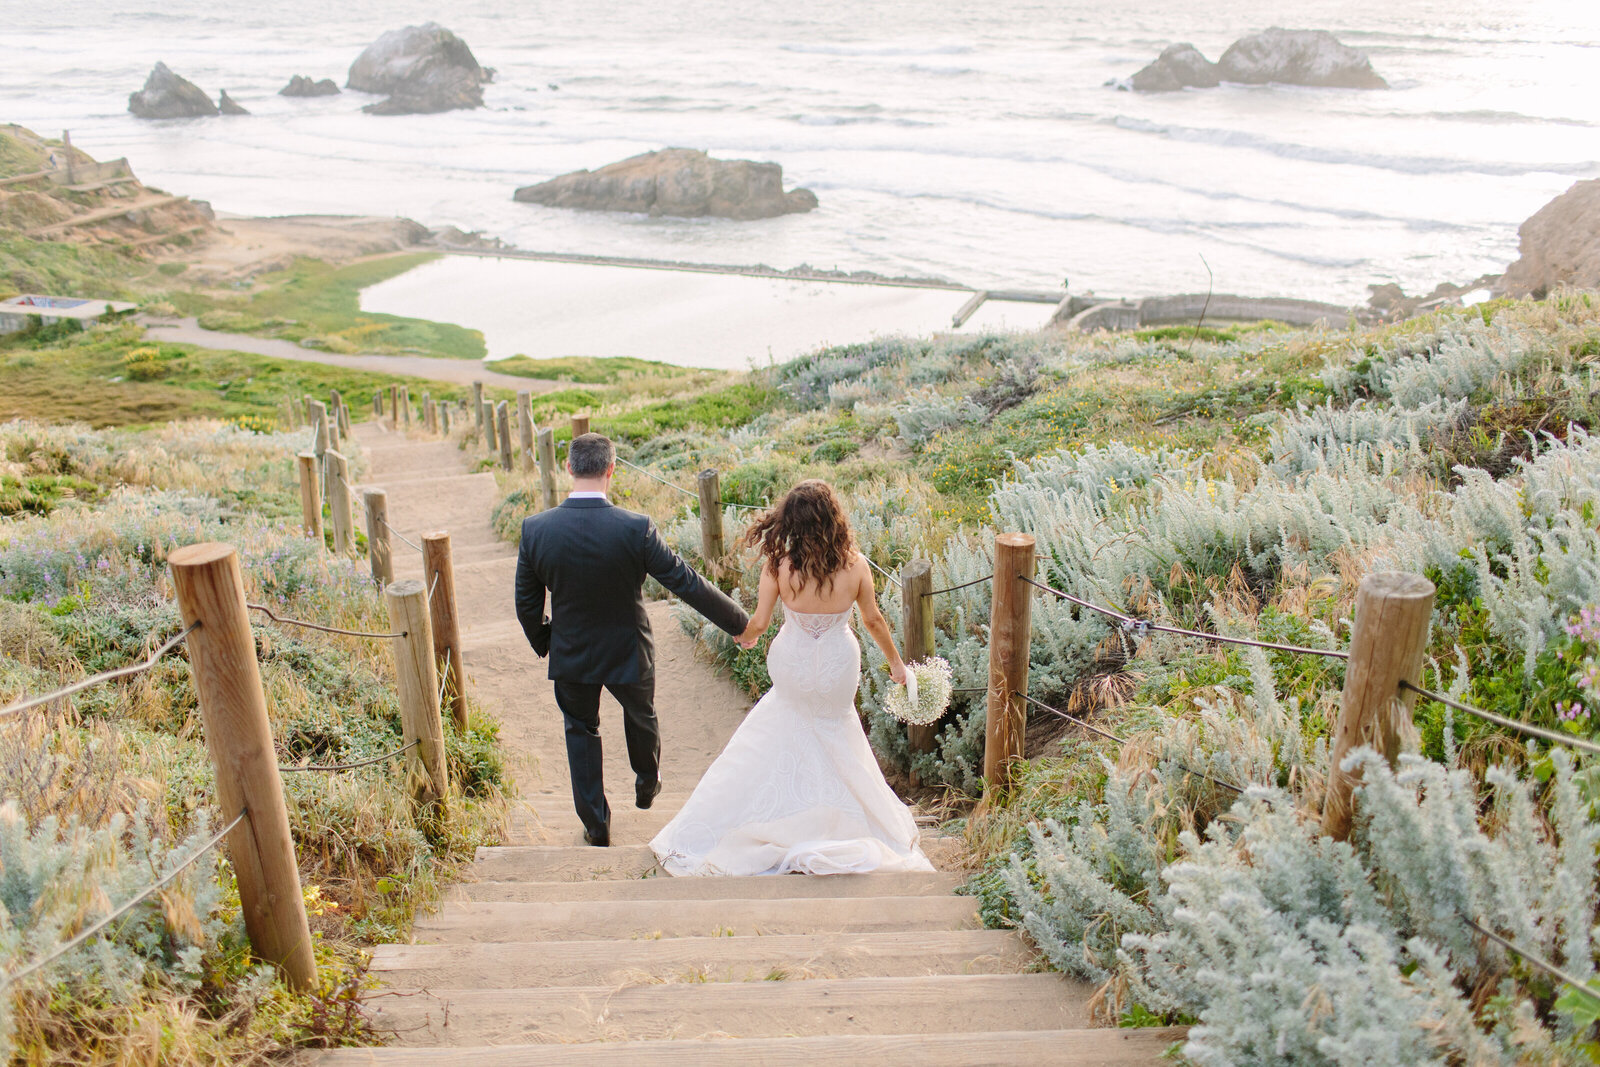 larissa-cleveland-elope-eleopement-intimate-wedding-photographer-san-francisco-napa-carmel-065